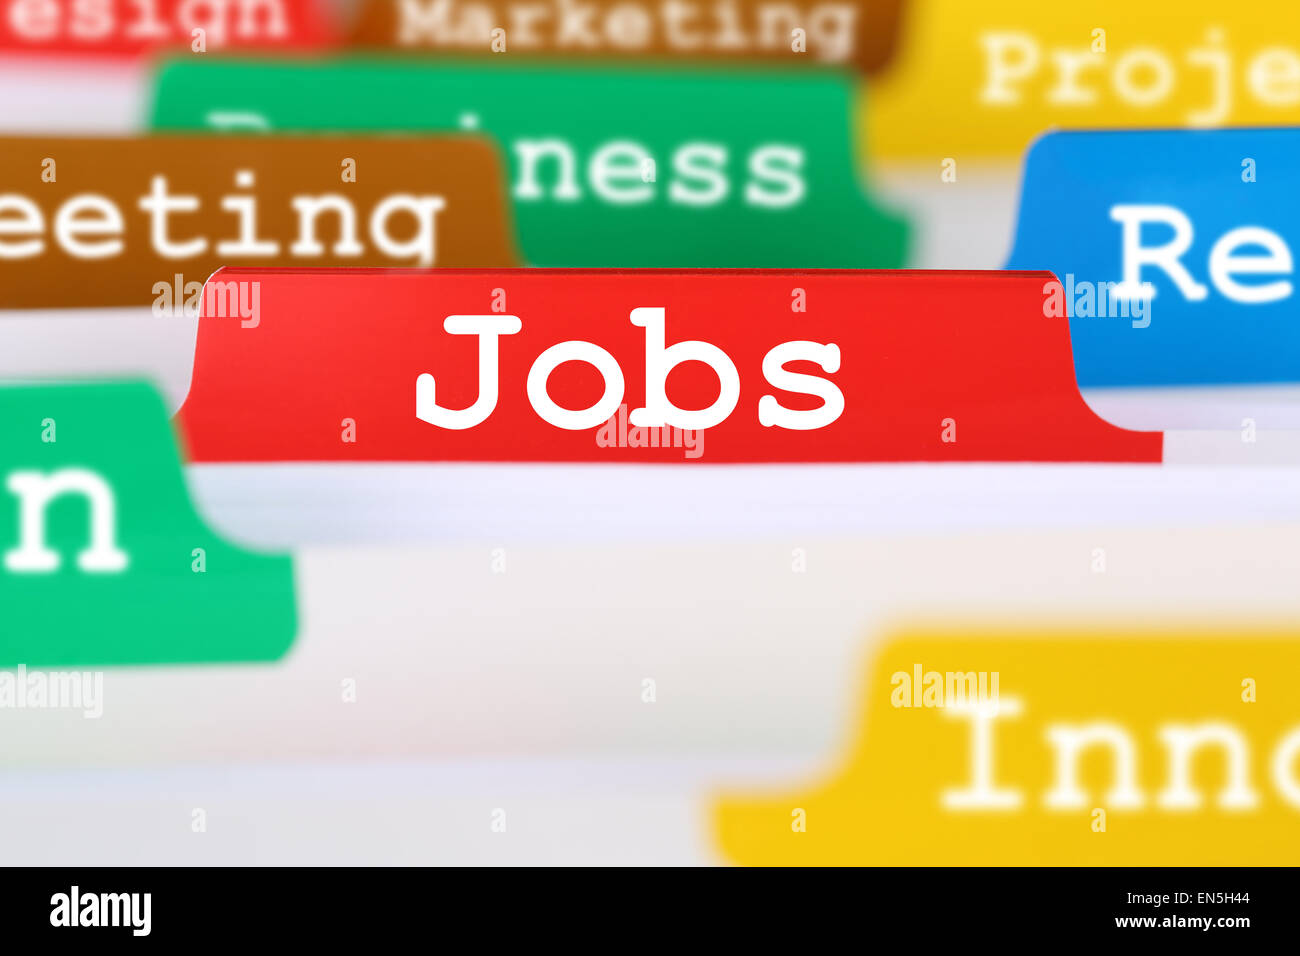 Job search for jobs employment business concept register in documents Stock Photo